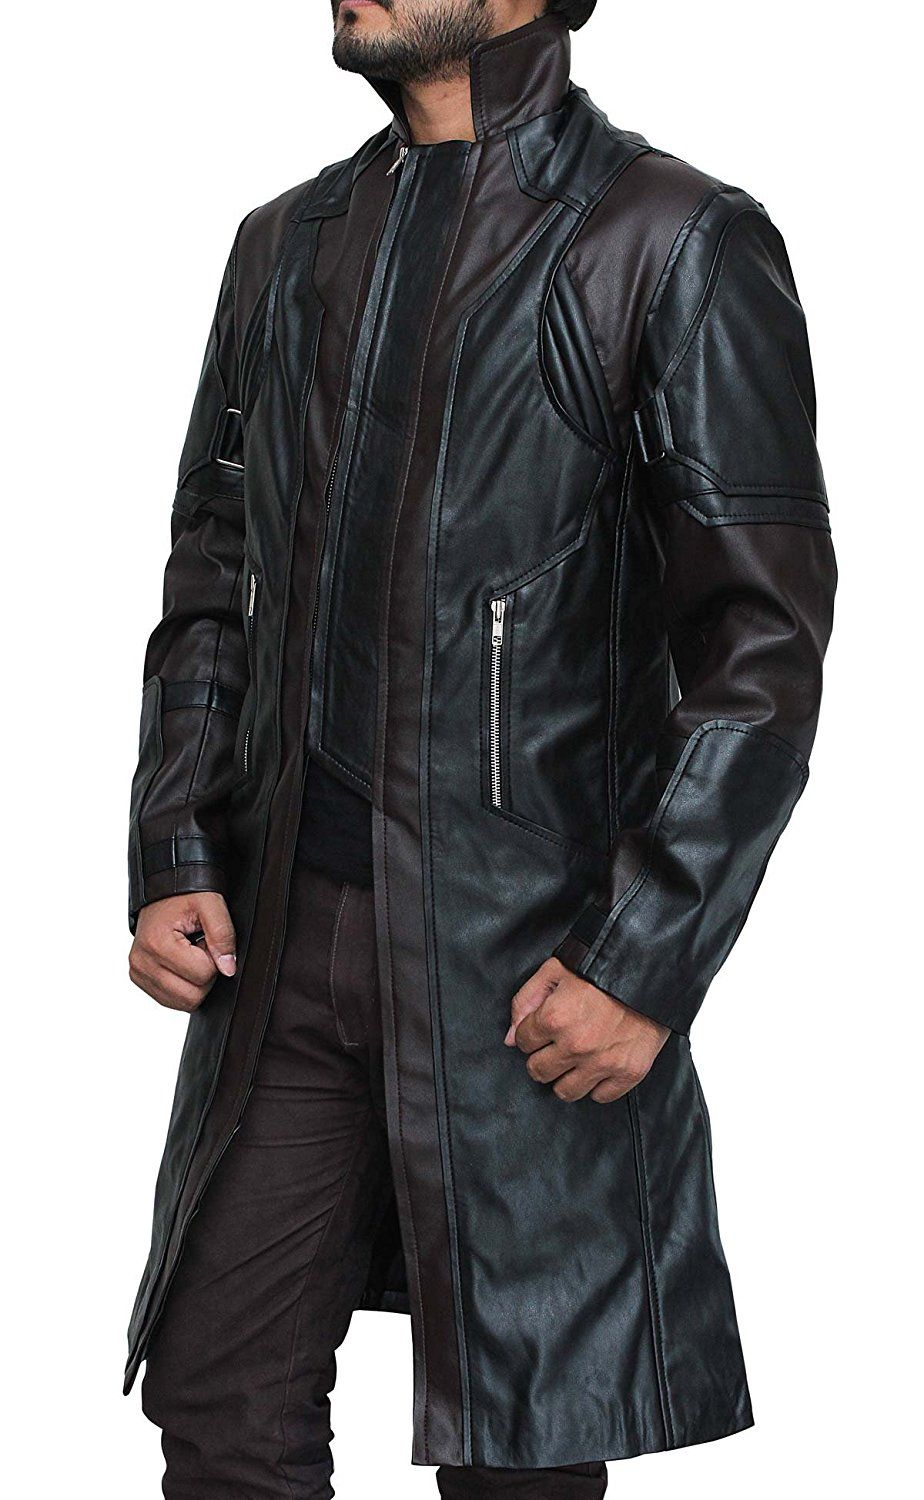 Hawk Brown Leather Coat Jacket at Amazon Men's Clothing